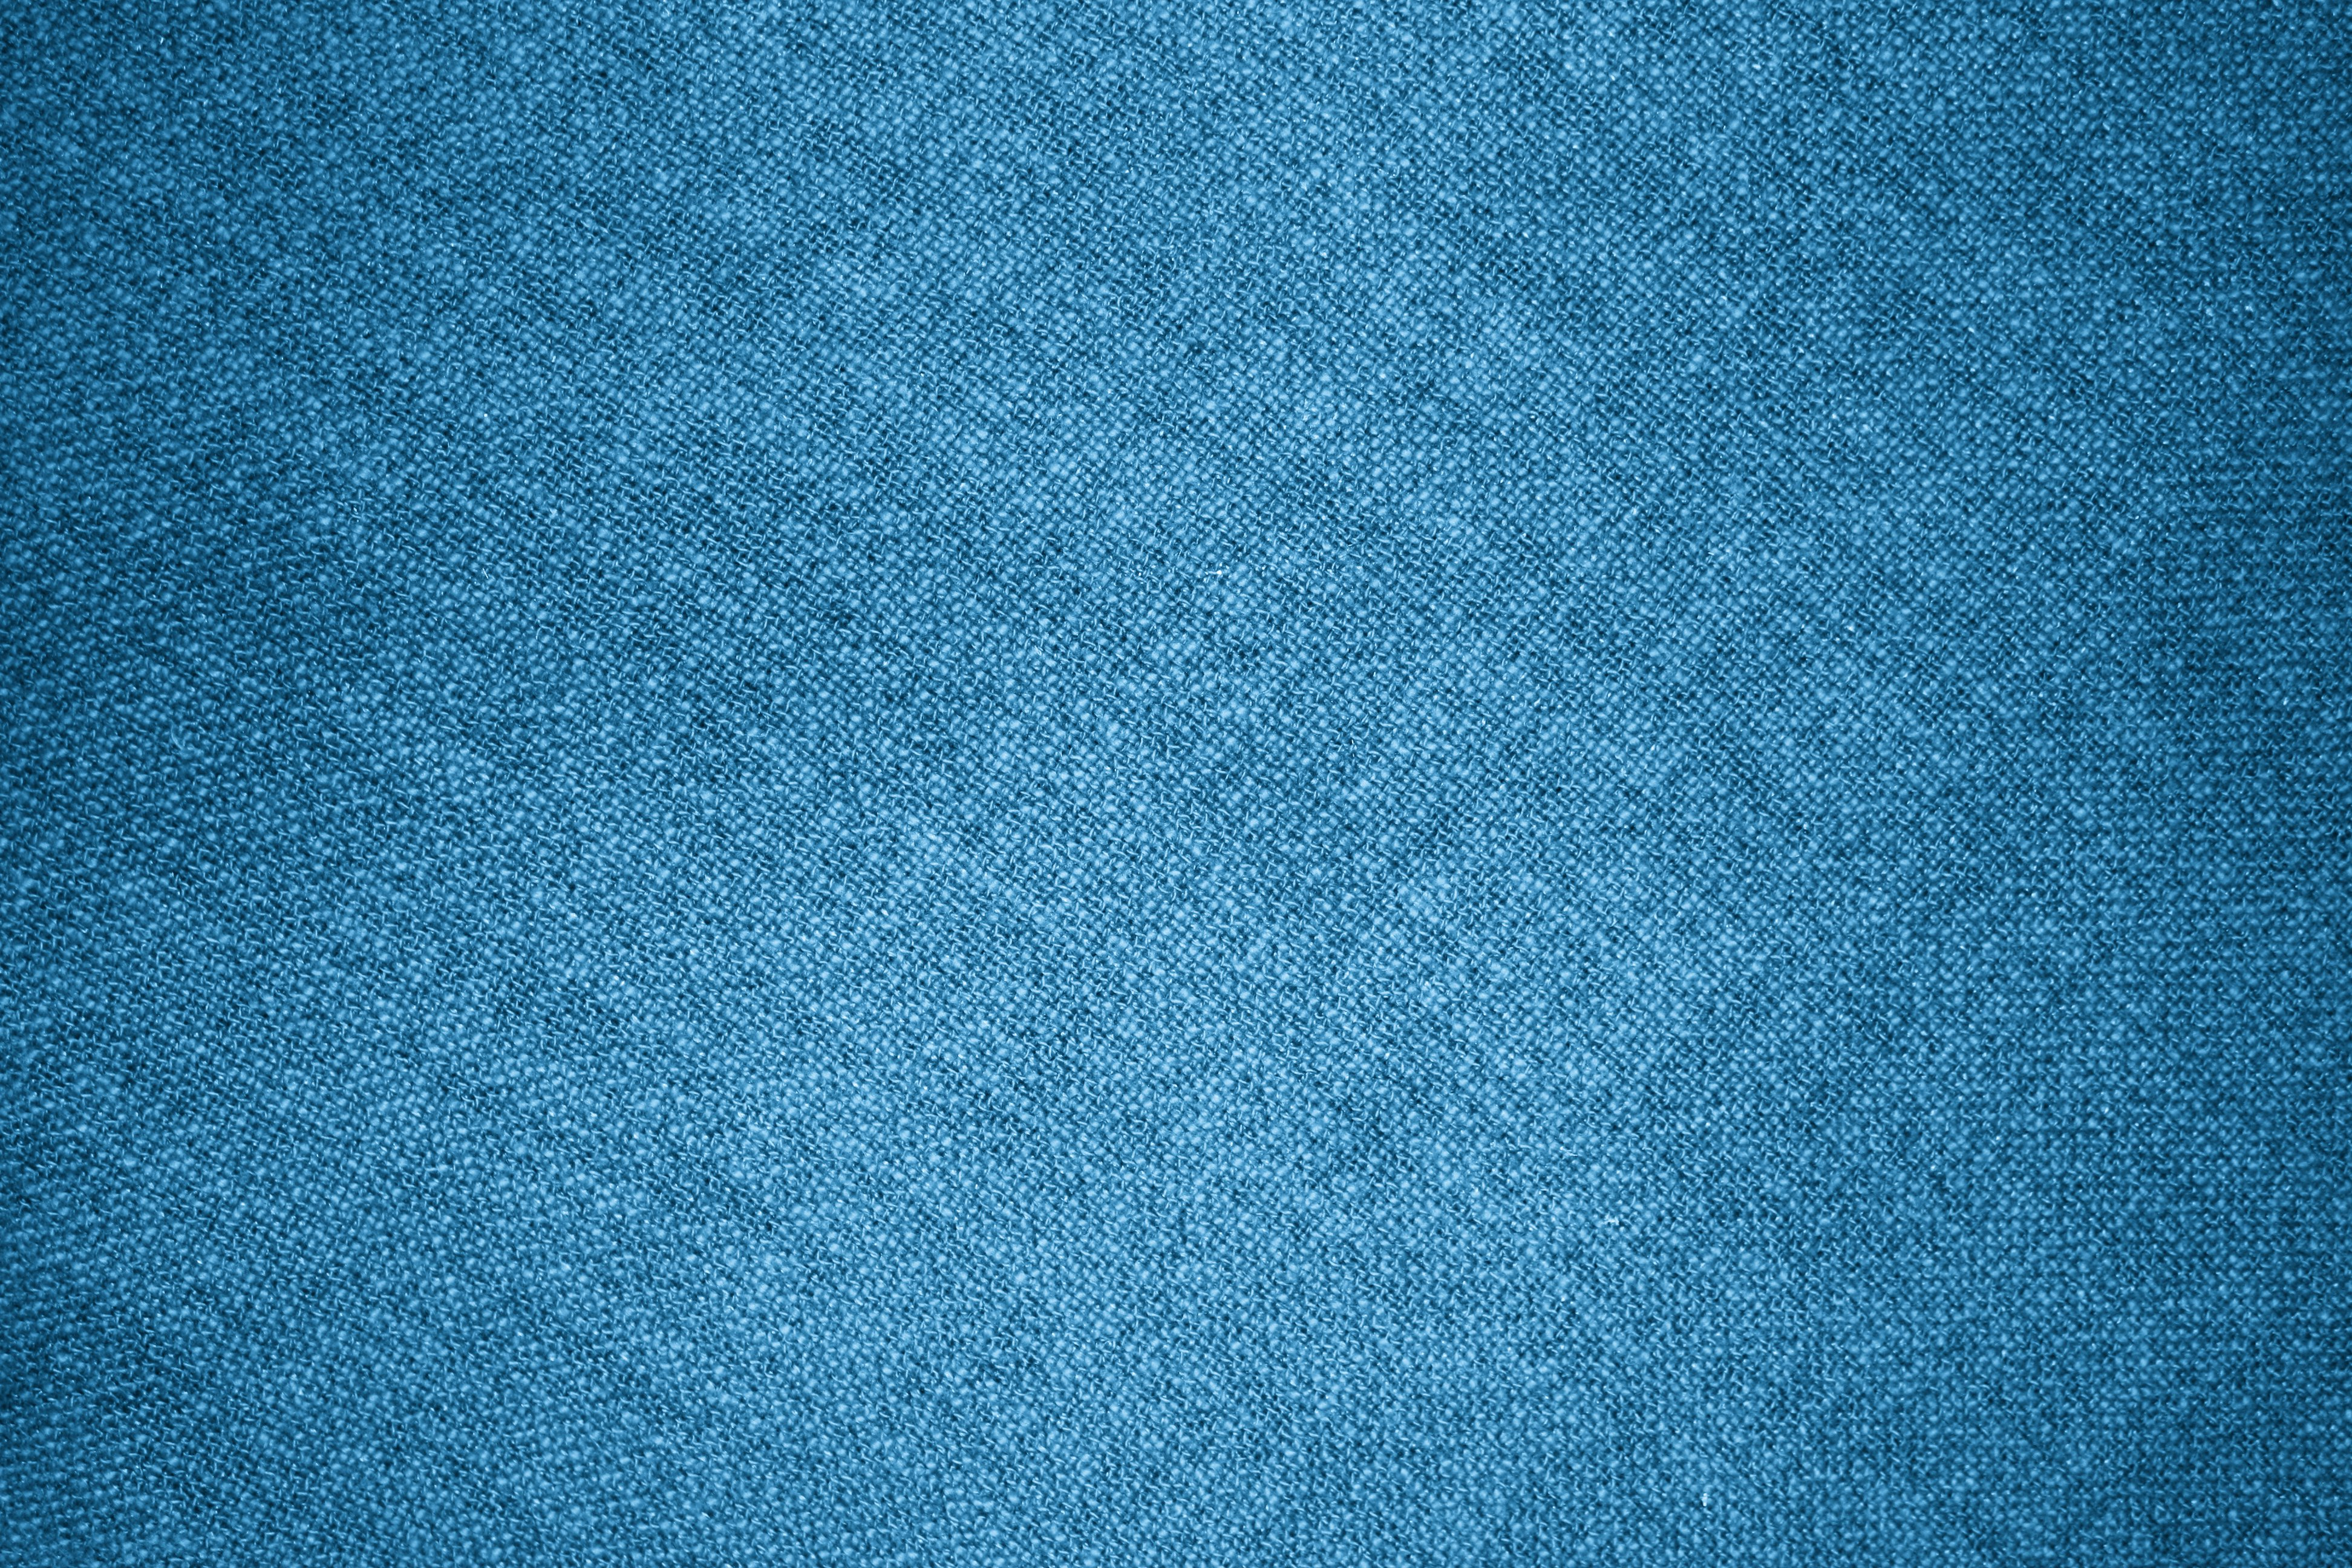 Azure Blue Fabric Texture - Free High Resolution Photo - Dimensions ...